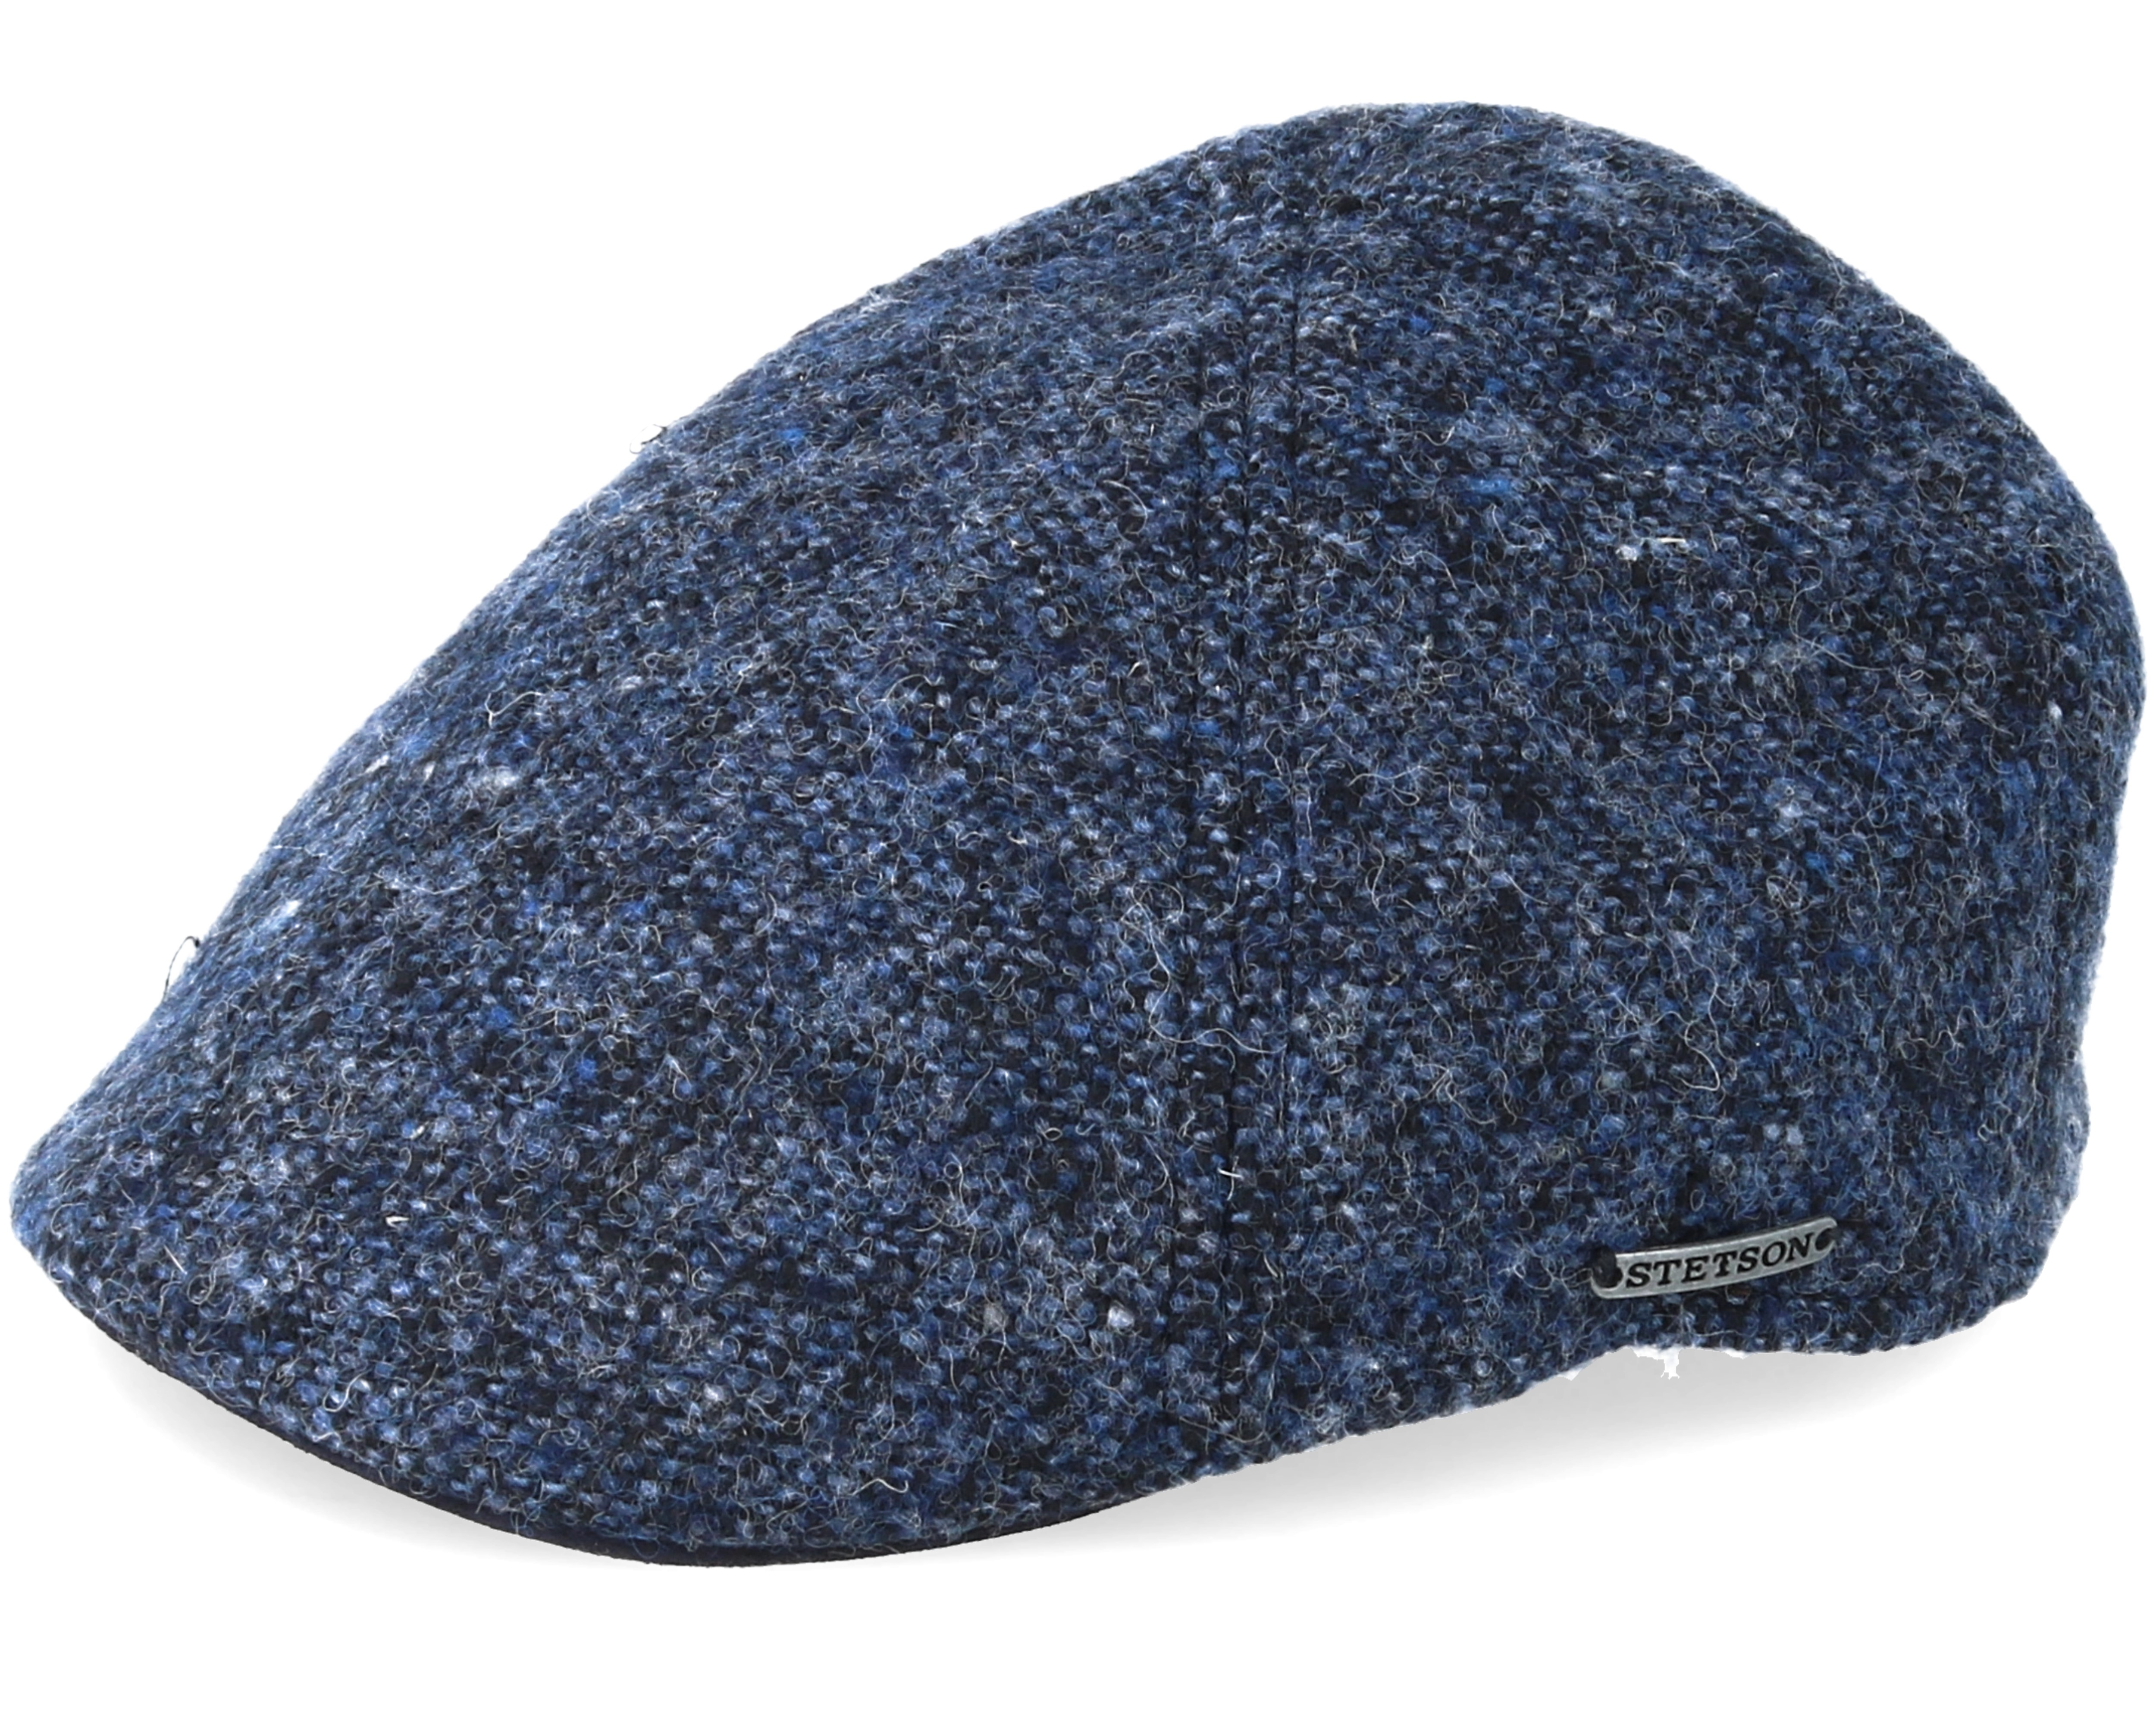 Texas Birgin Wool Goat Donegal Tweed Navy Flat Cap